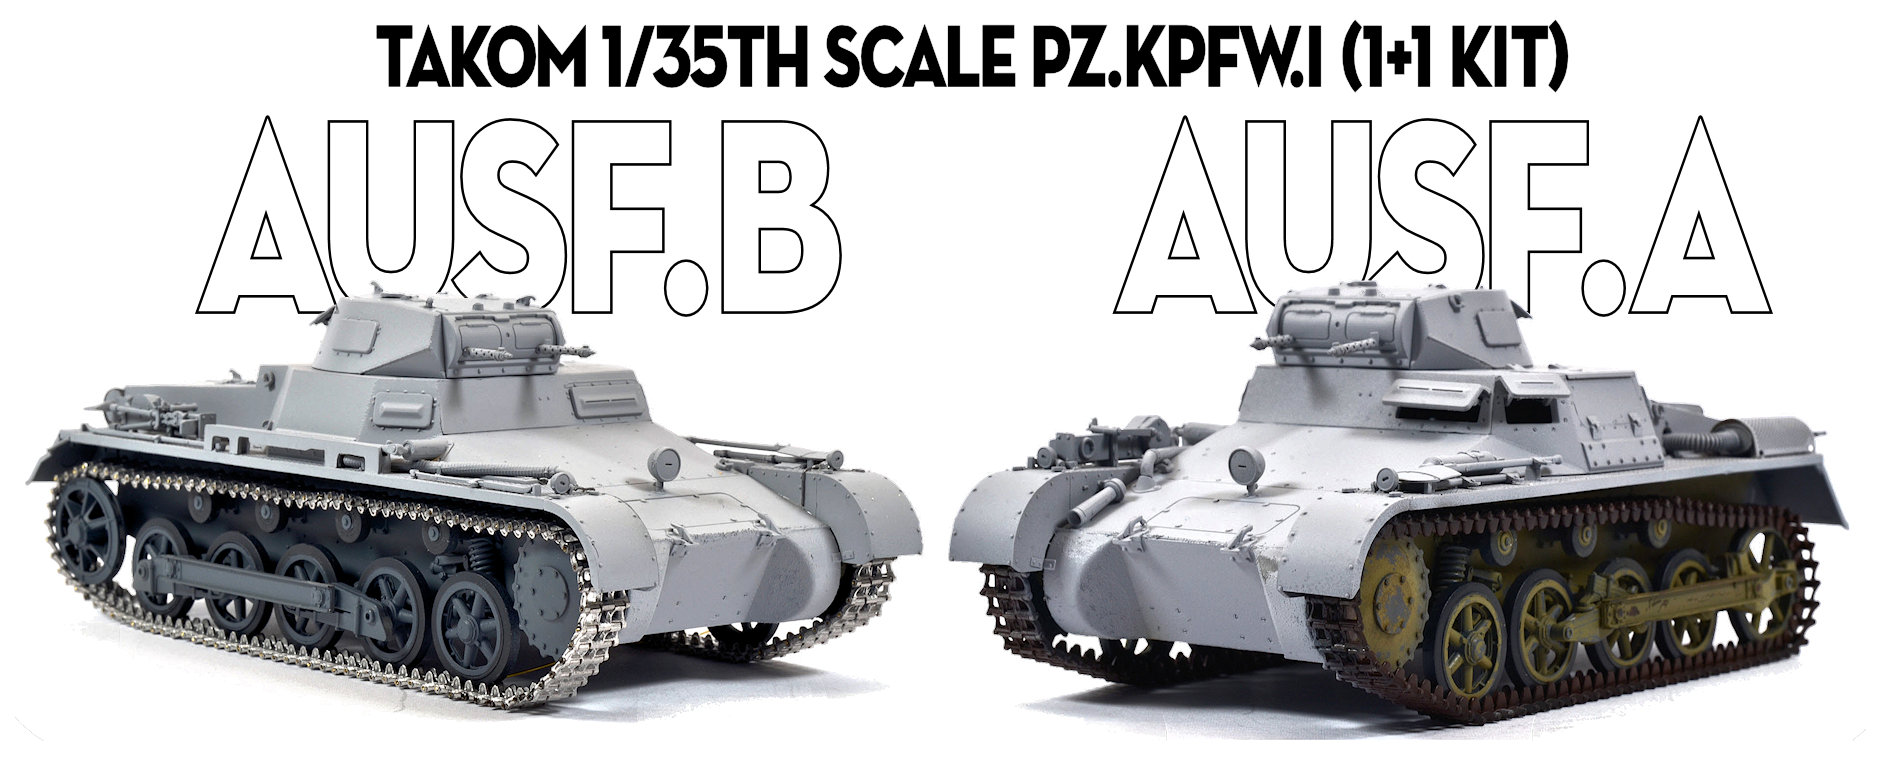 The Modelling News: Build Review Pt I: Pz.Kpfw.I Ausf.A & Pz.Kpfw.I Ausf.B ( 1+1 kit) in 35th scale from Takom.